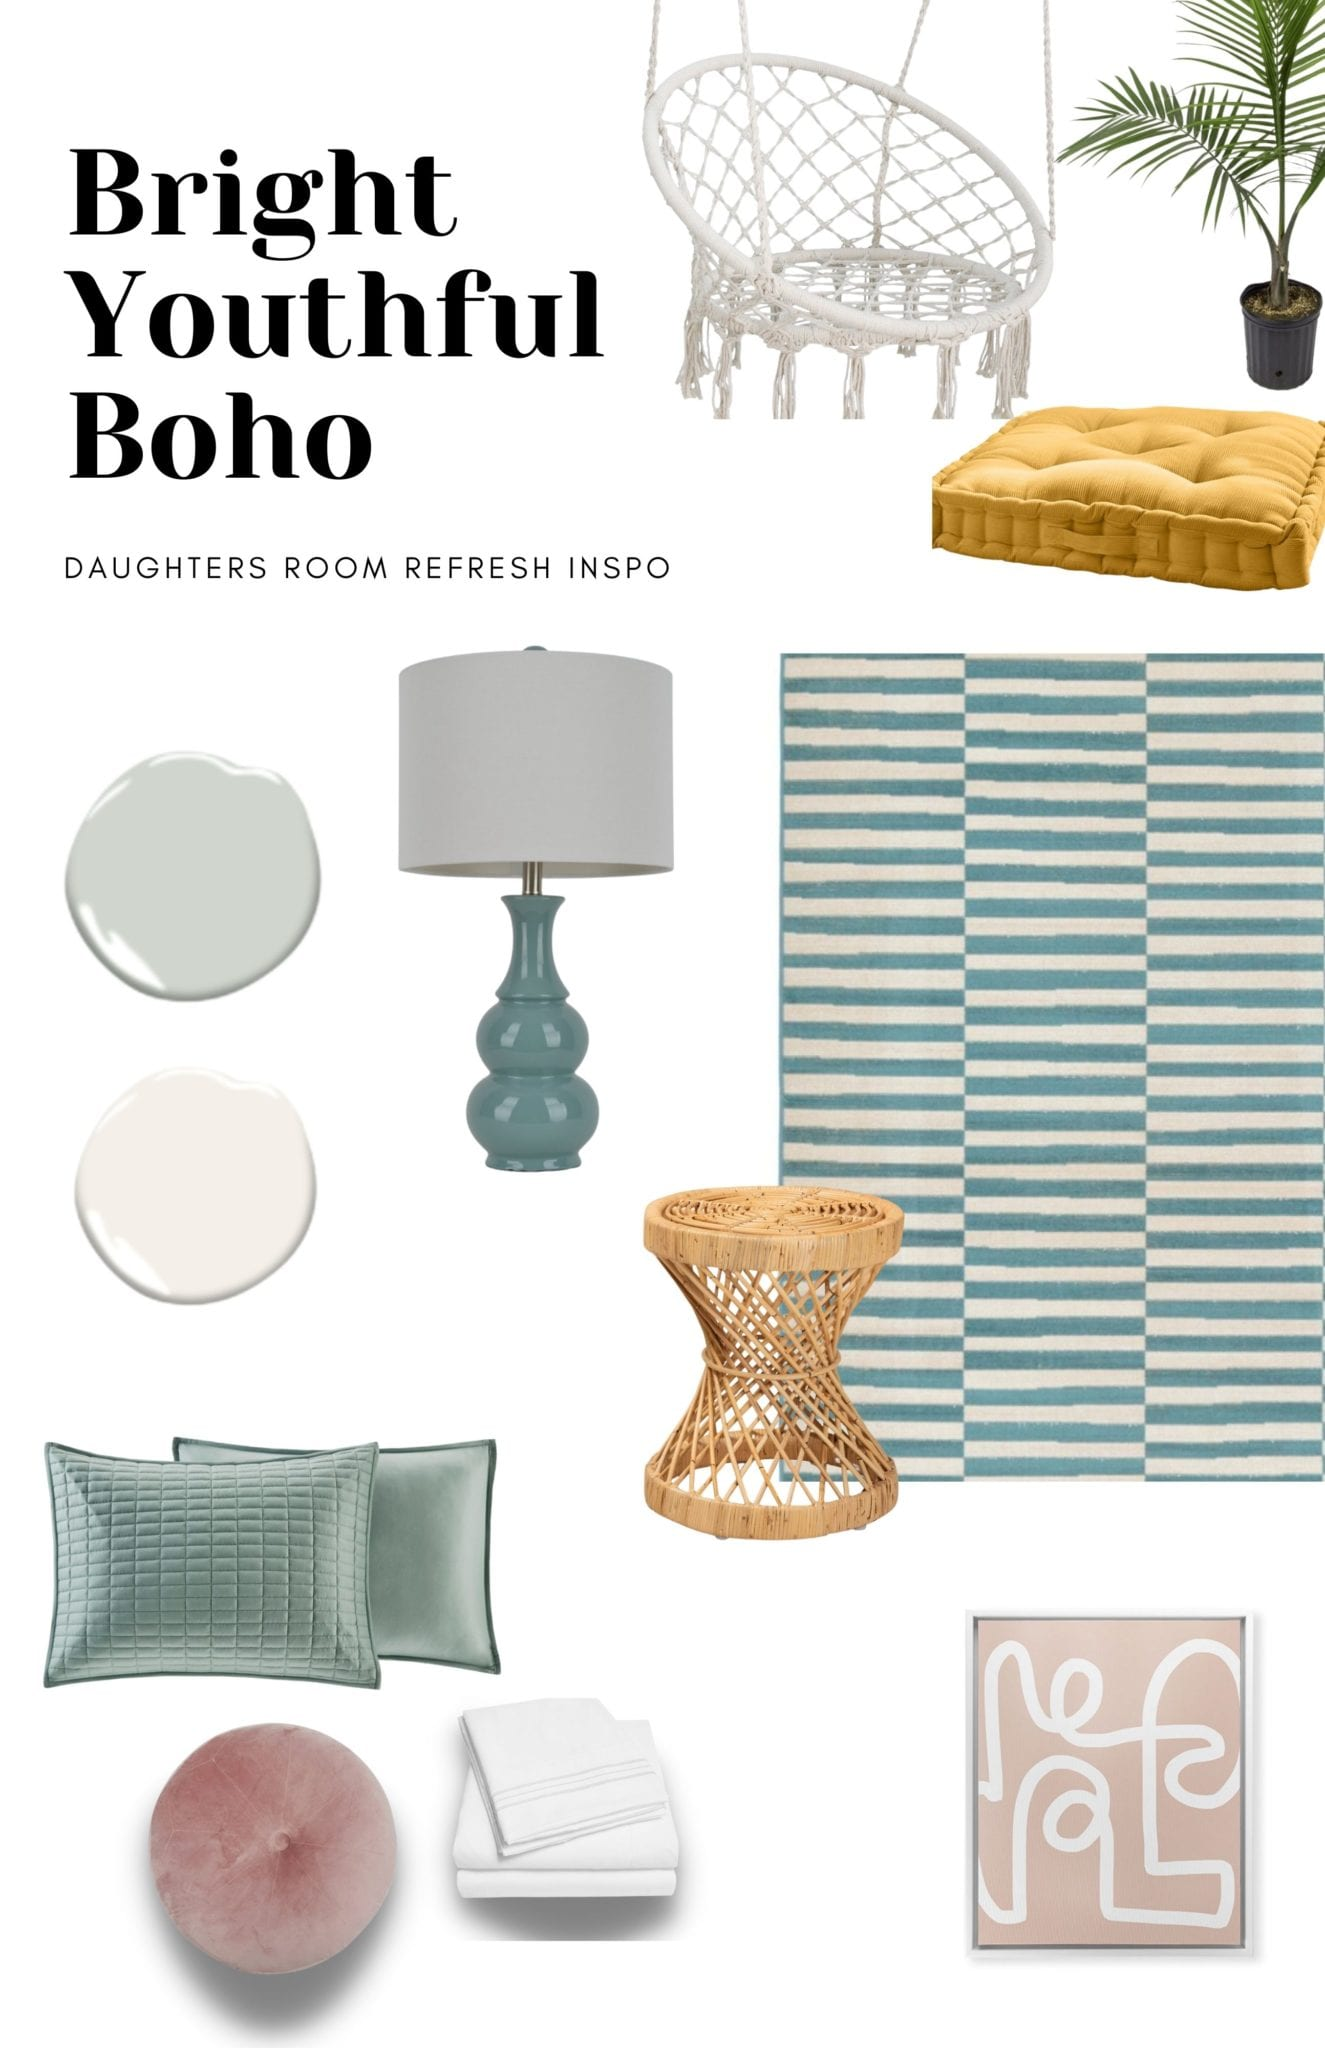 Teal and pink bedroom for girls with pops of yellow and rattan accents.